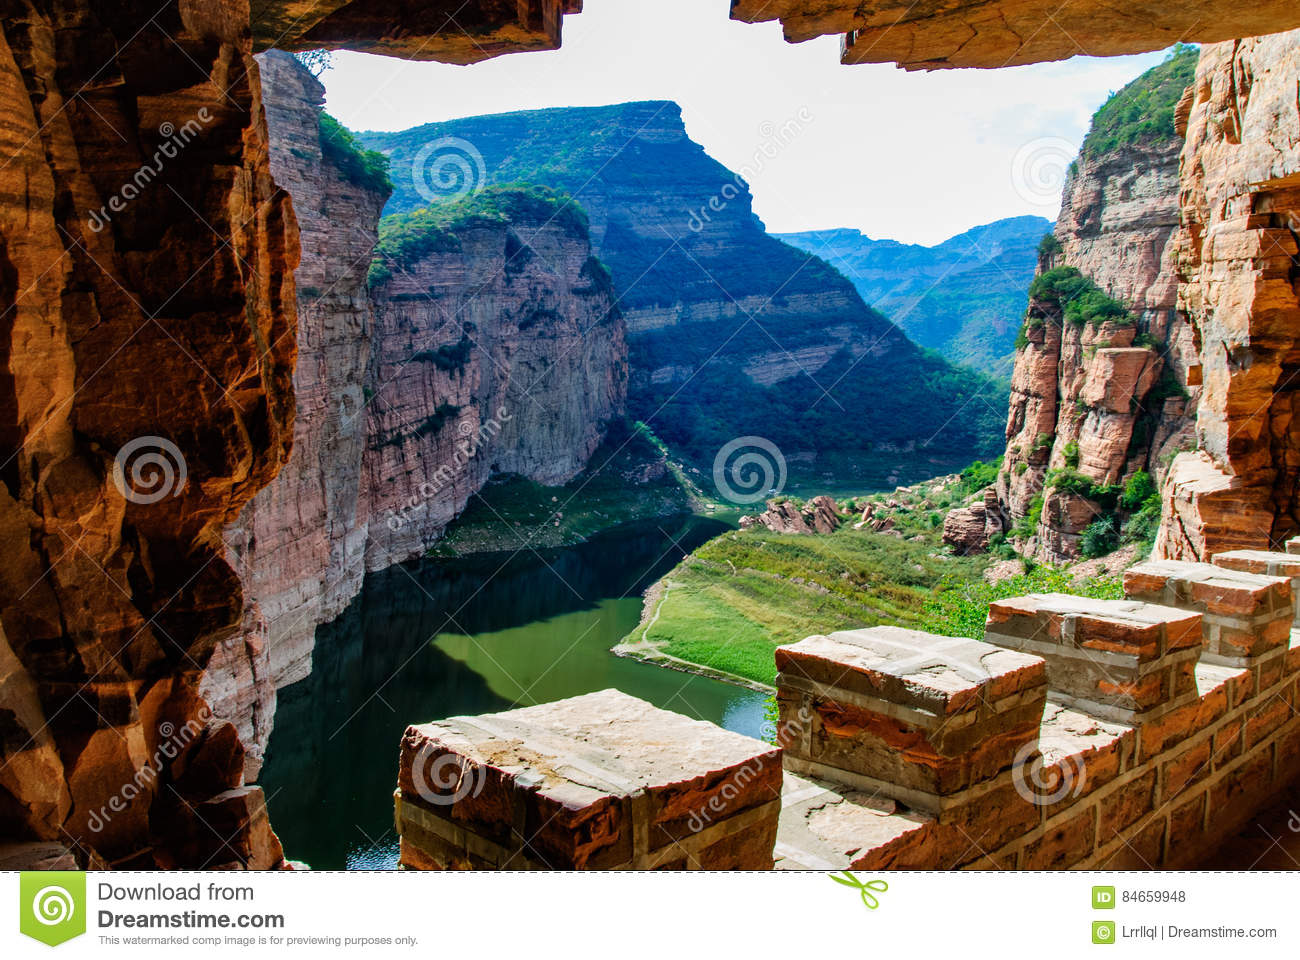 Ten gorge ditch ditch village China no day gorge in Hebei province Xingtai City Wall Road